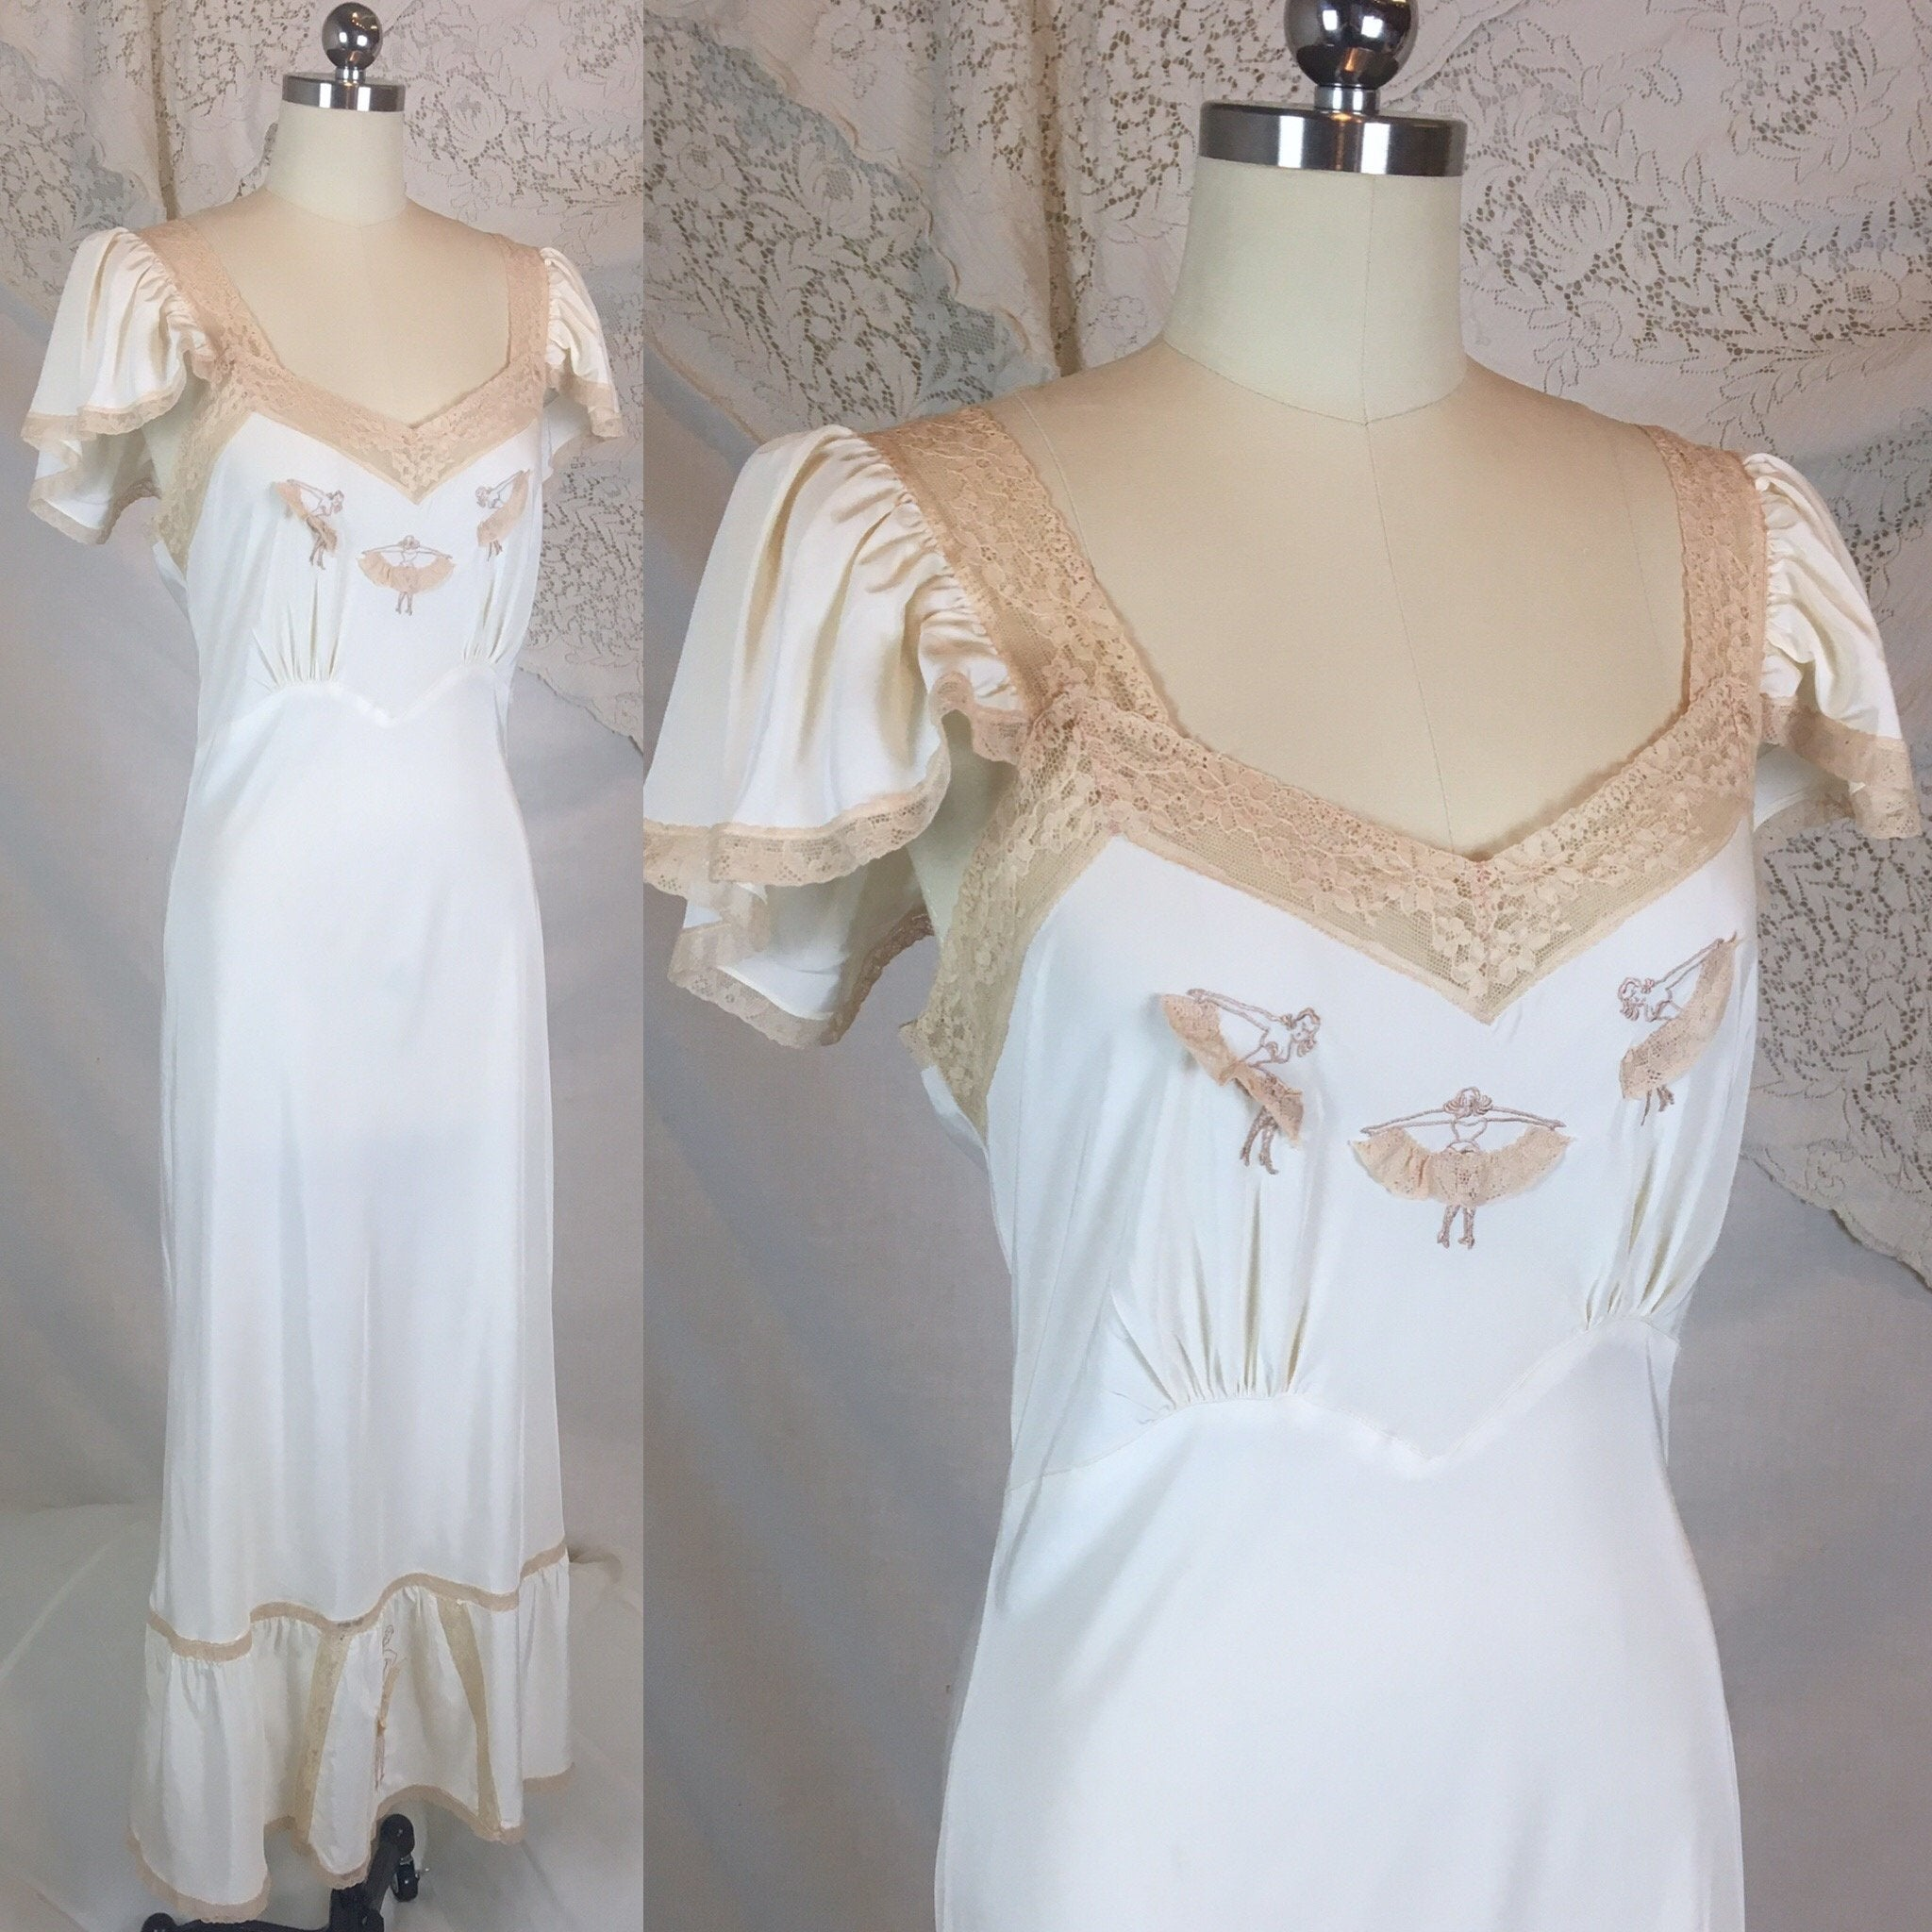 Vintage 1940's Nightgown | Ivory Acetate Blend with Ecru Lace & Burlesque Embroidery | Carillon -Never Worn | Size M, LG - Daggers & Dames